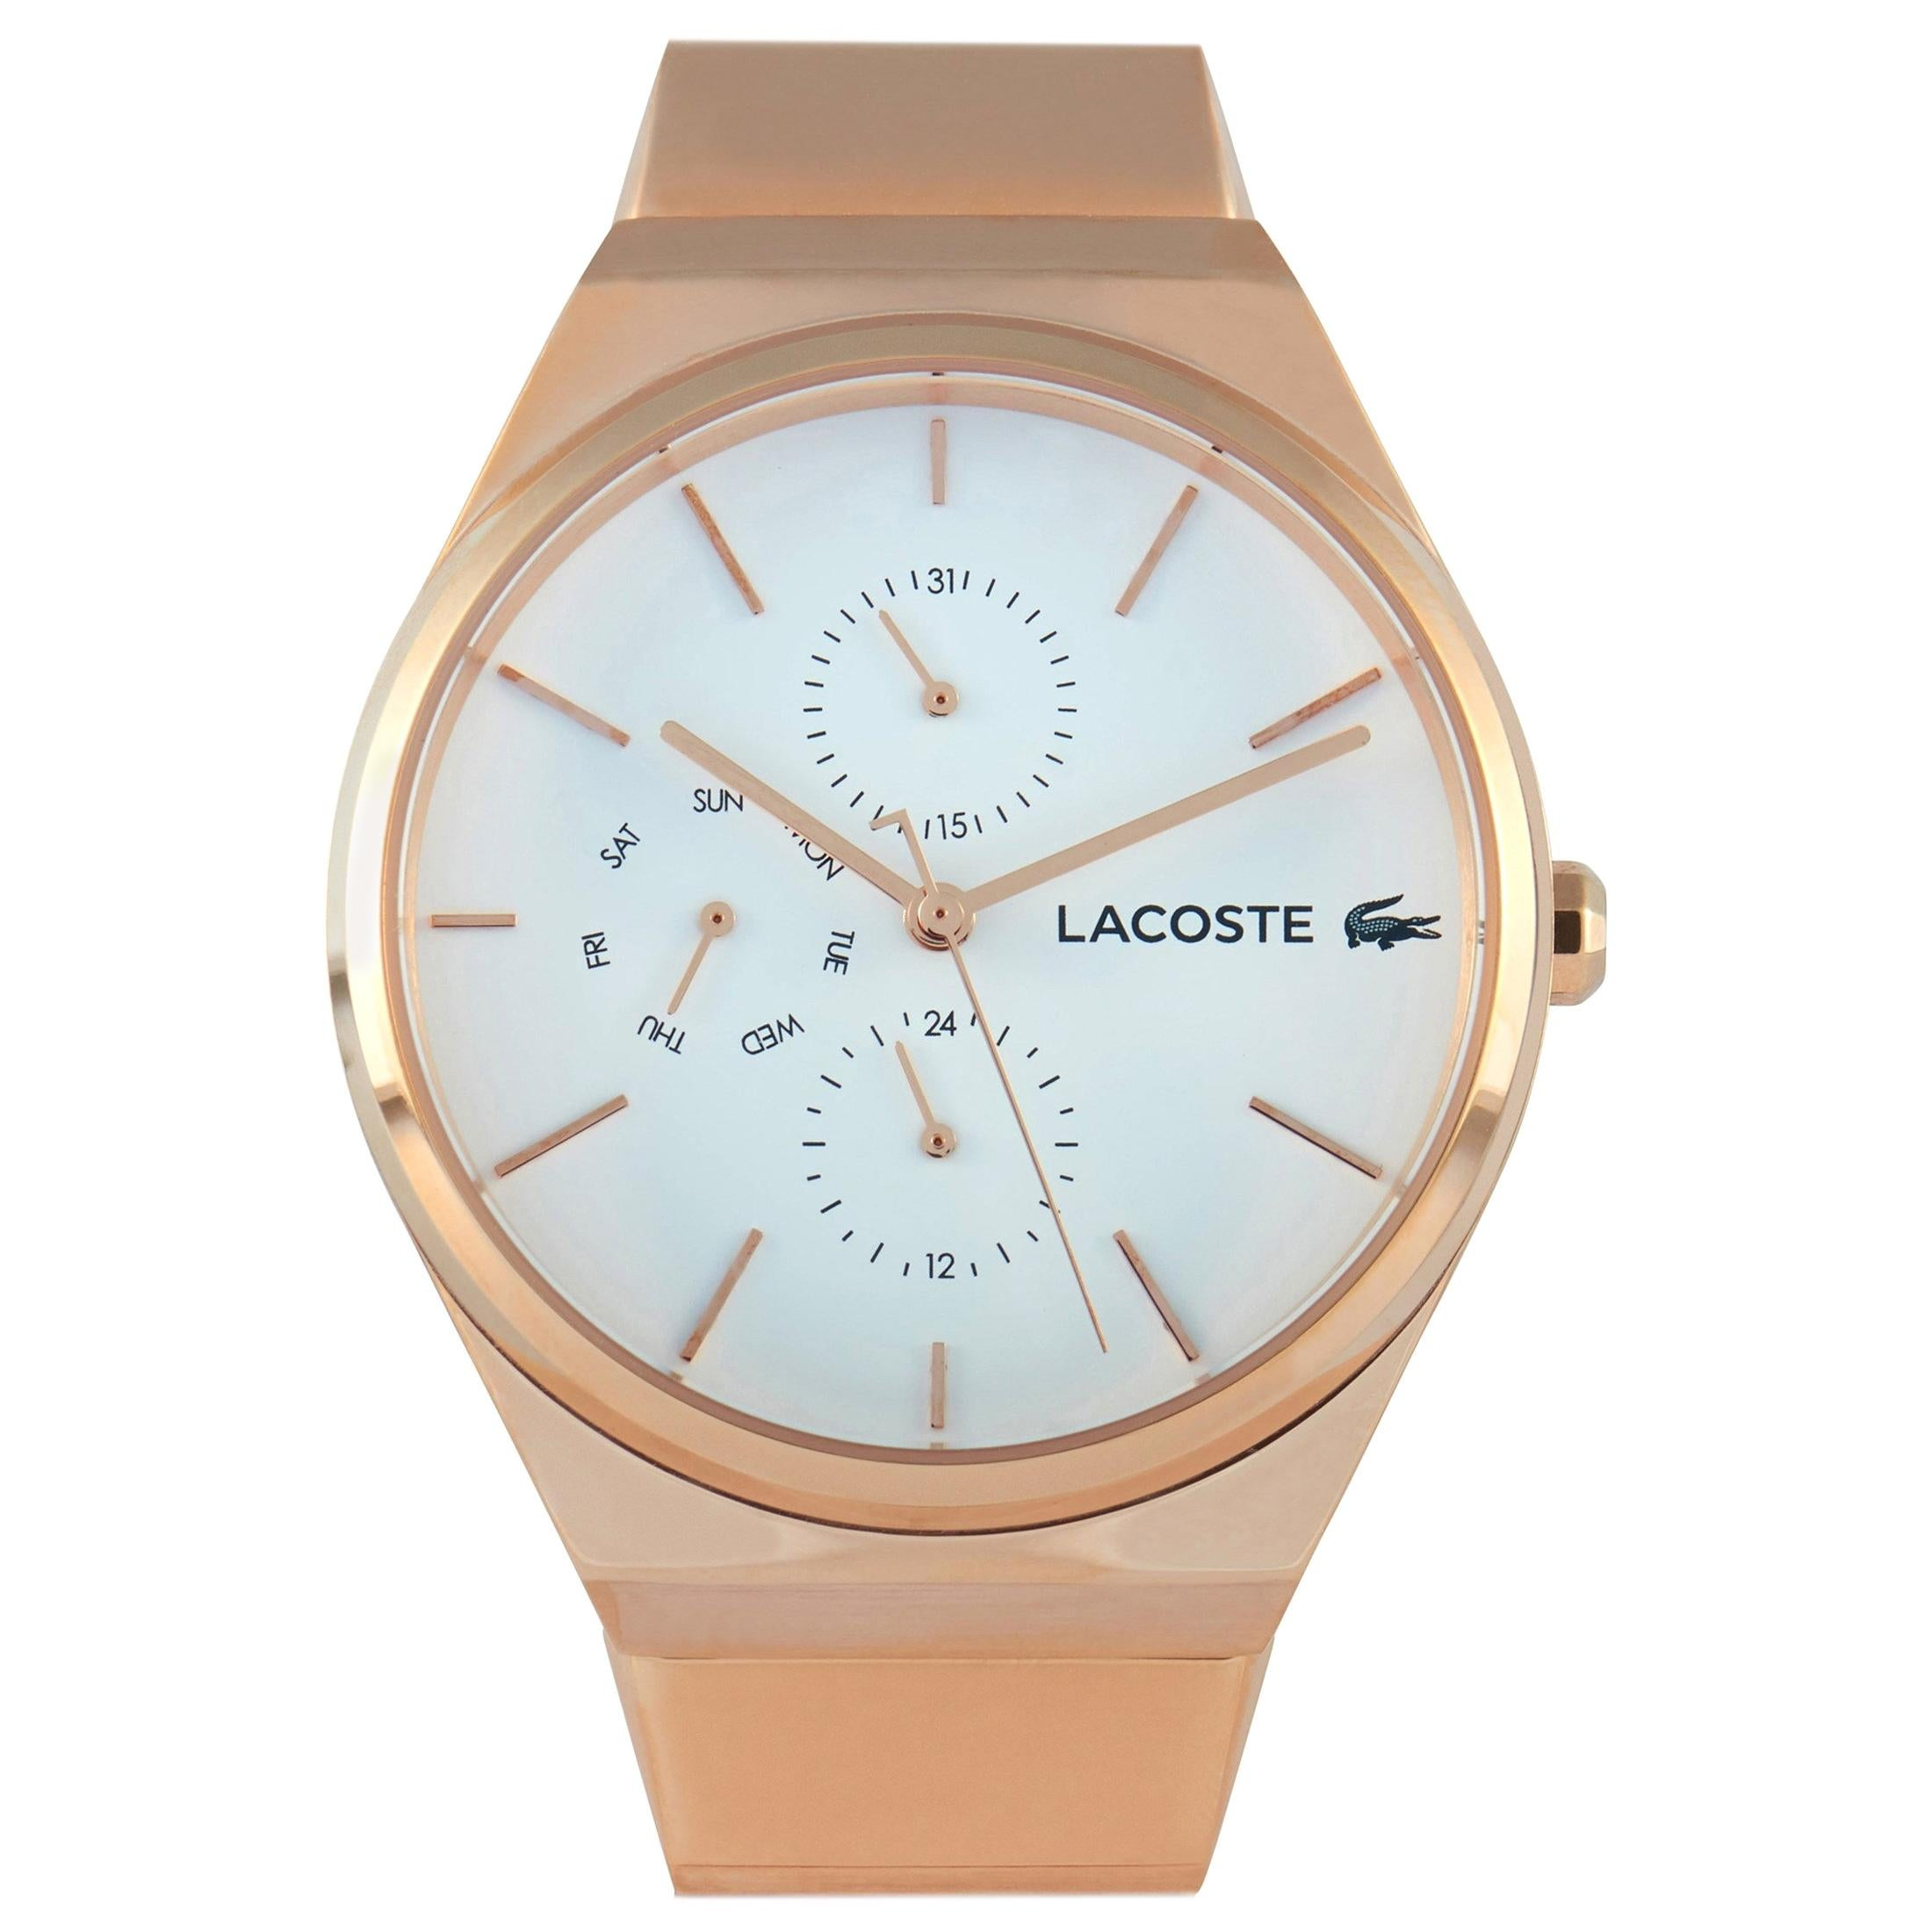 Lacoste Bali Rose Gold-Tone Stainless Steel Watch 2001036